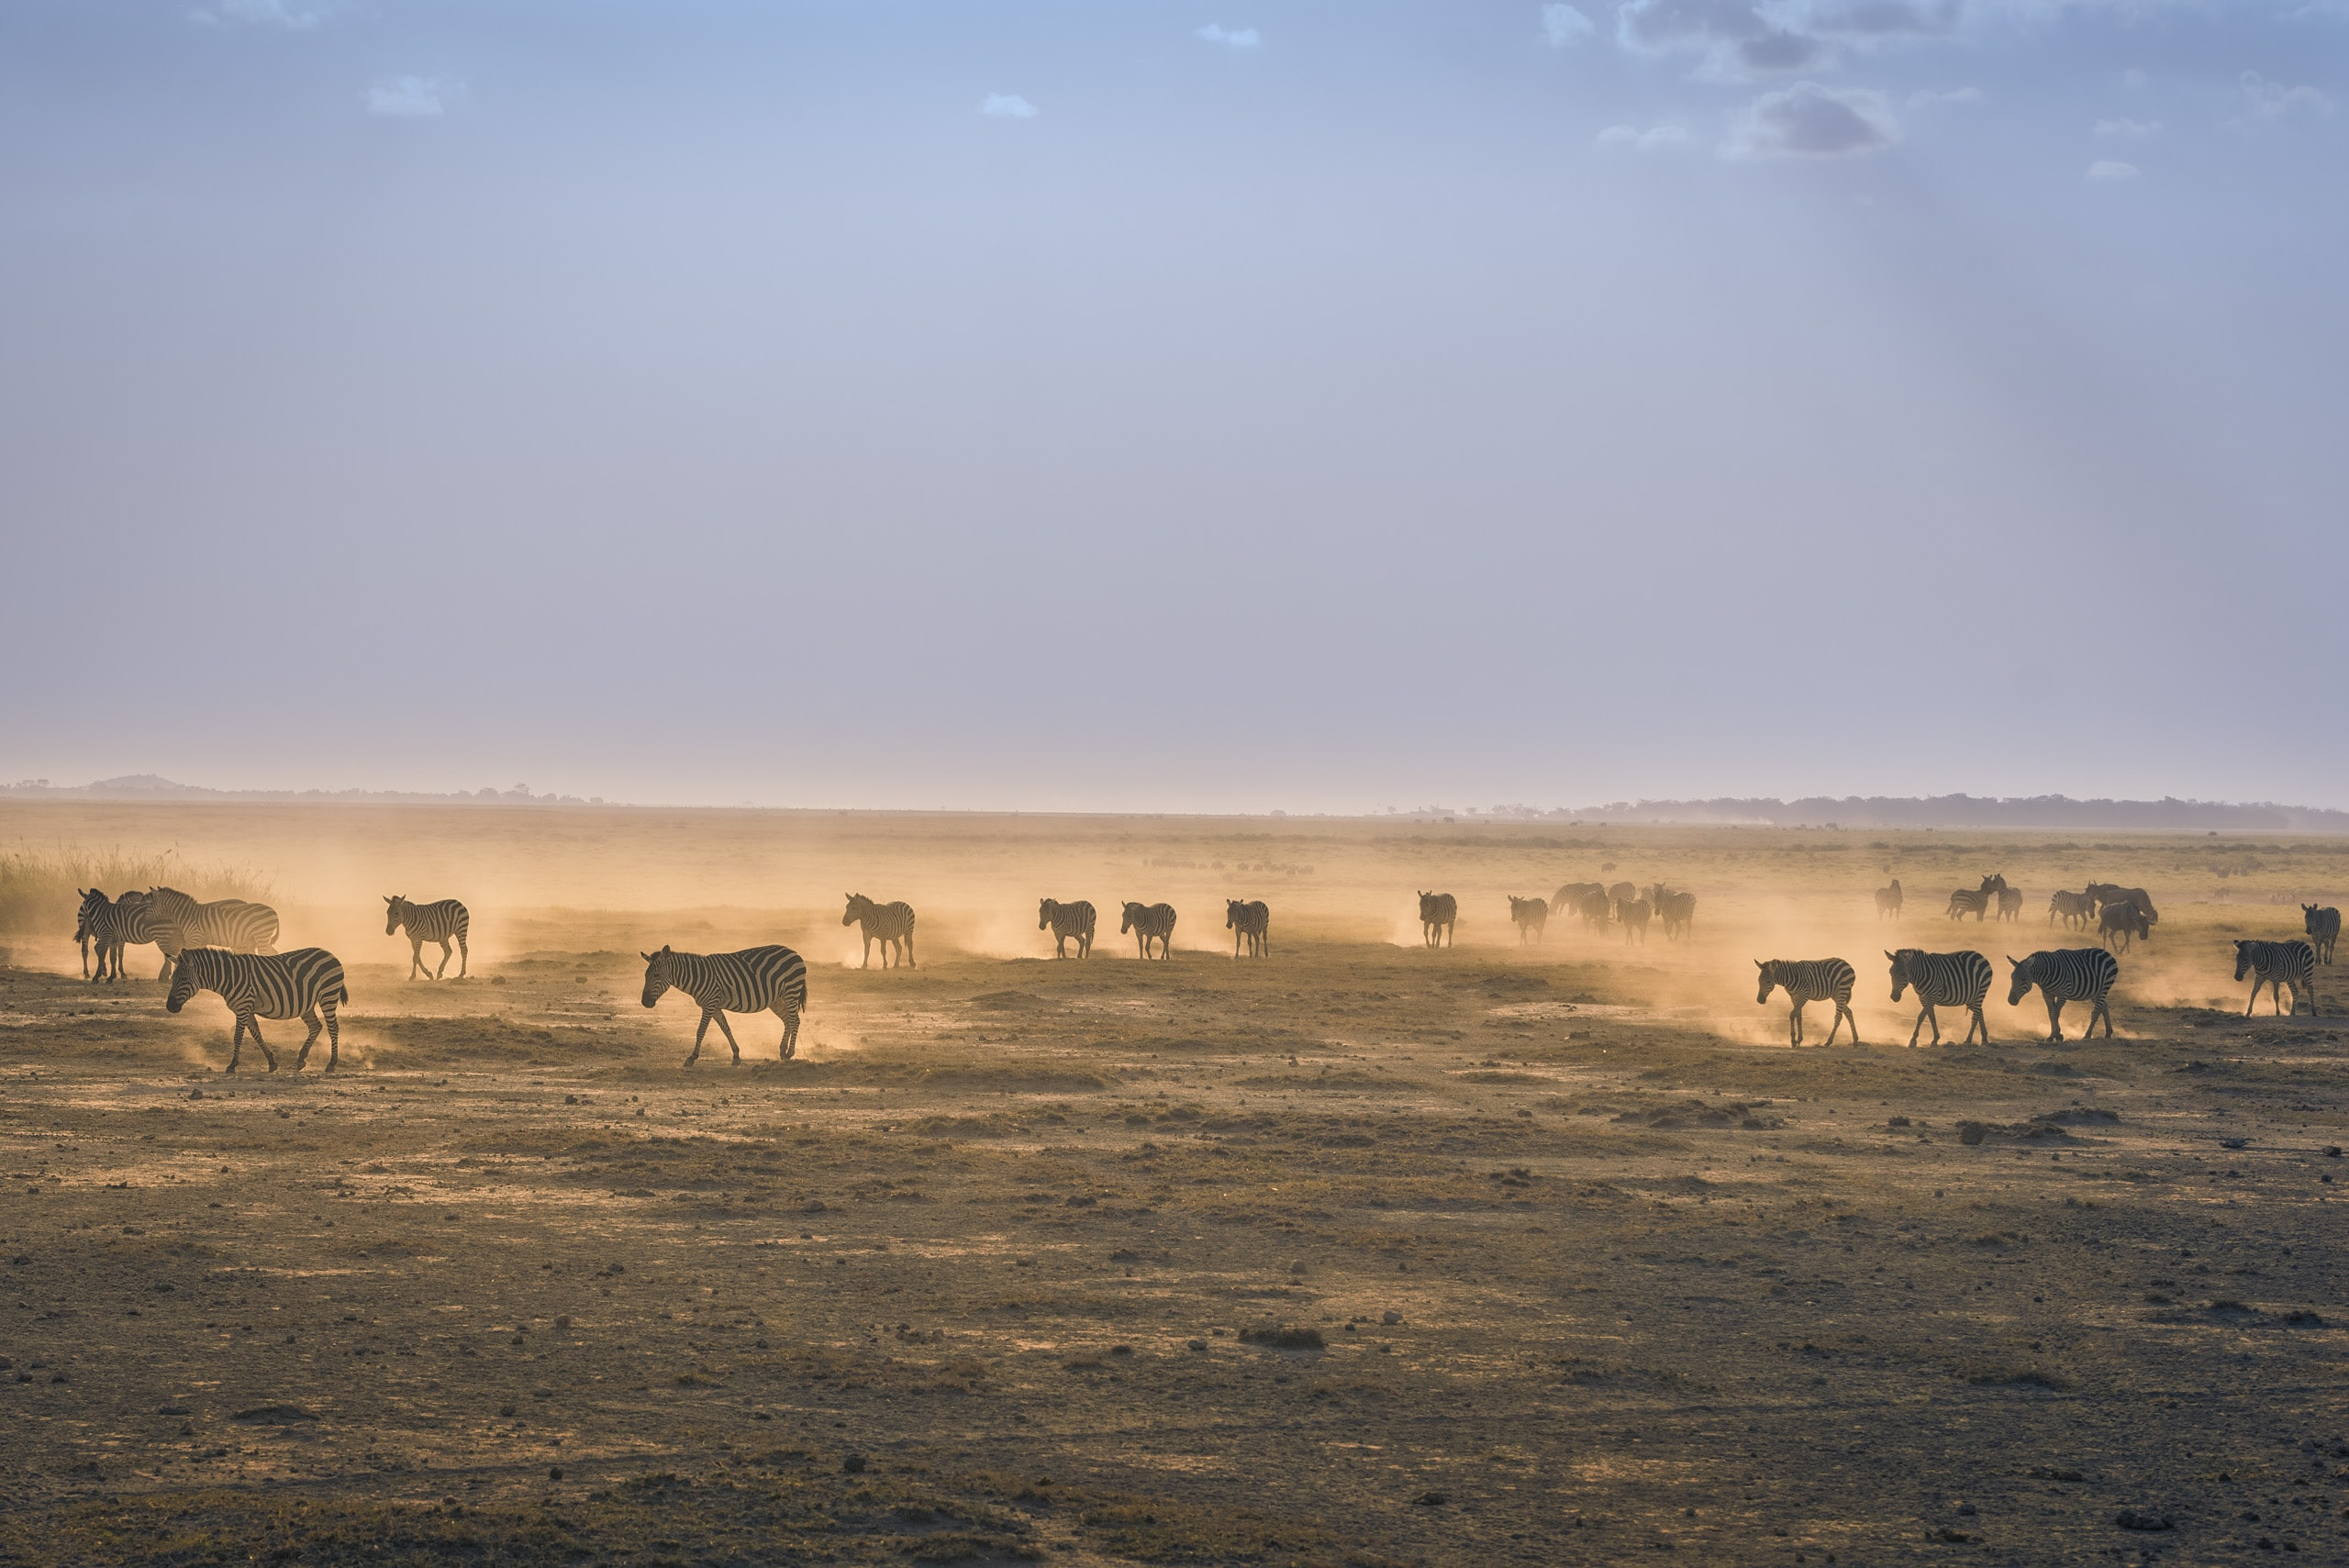 Zebras walk through the desert sands of Amboseli National Park